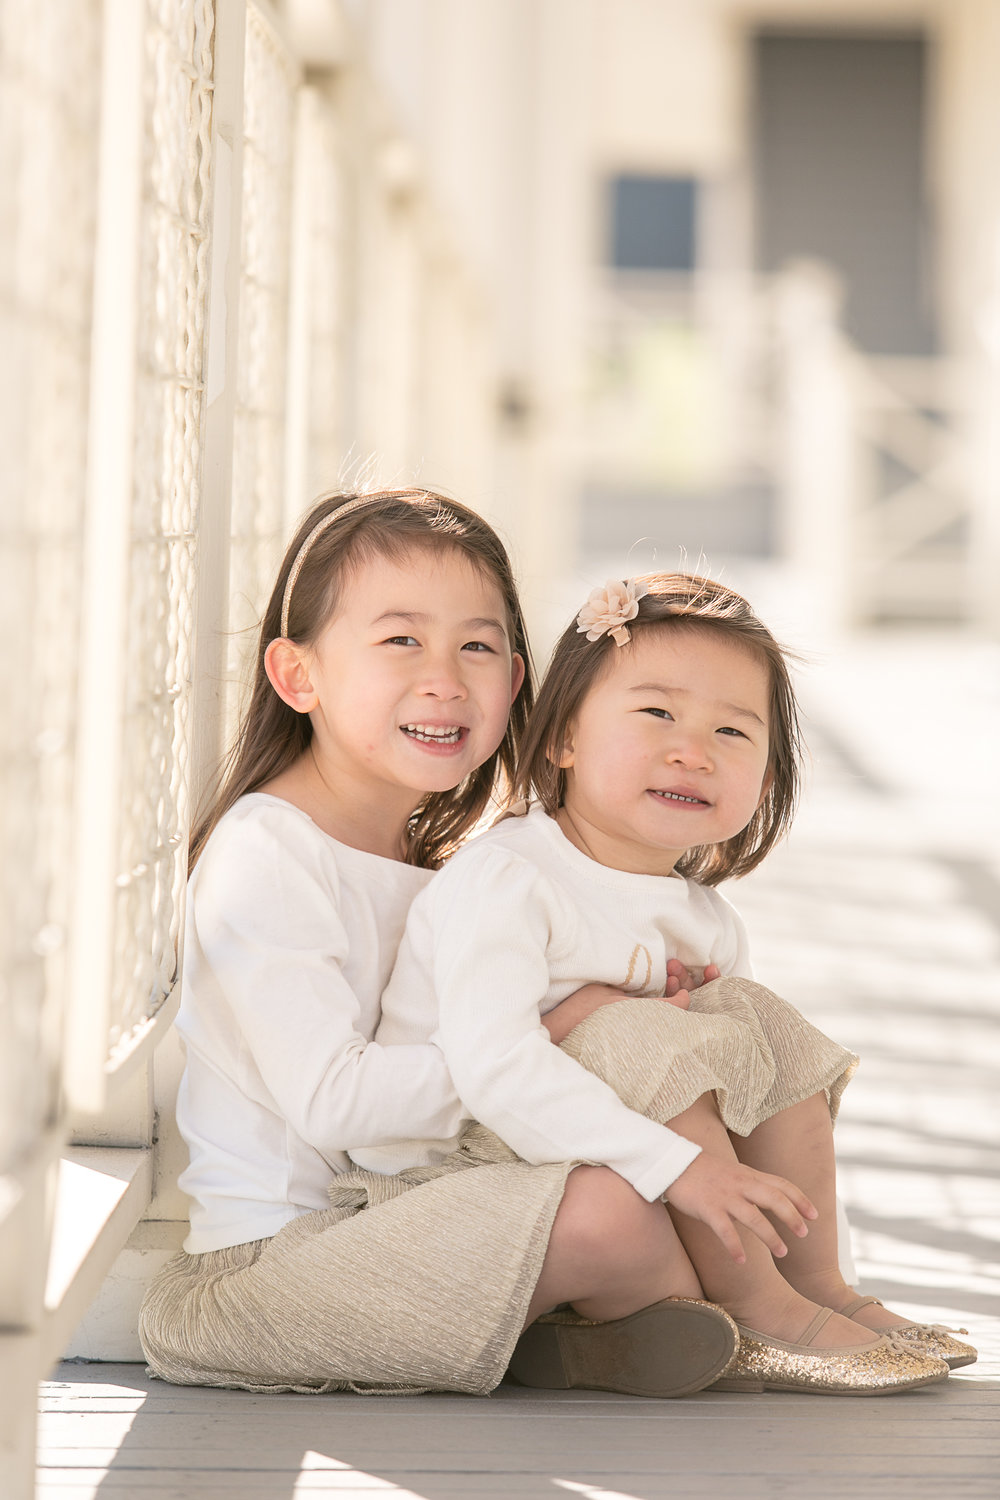 San_Francisco_Children_and_Family_Portrait_009.jpg